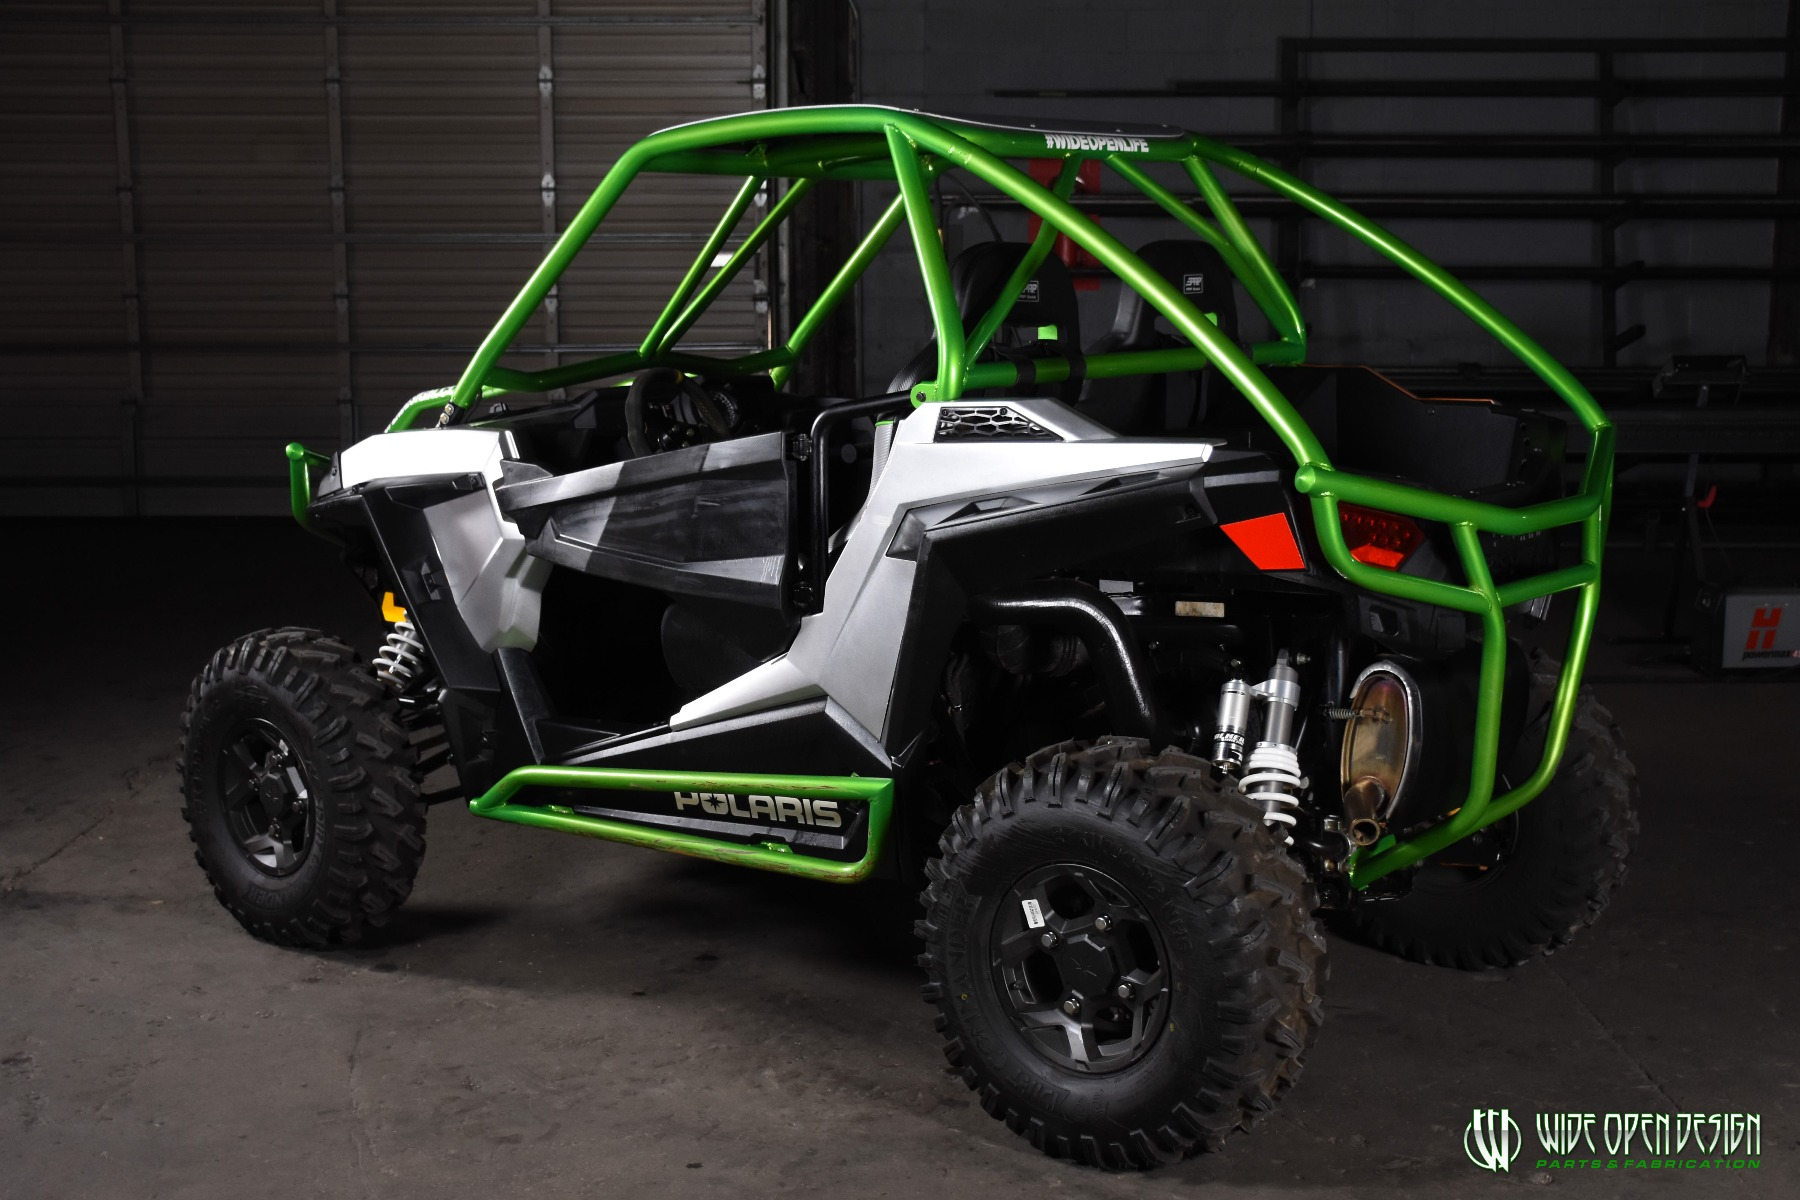 Jason's 1000s RZR with Wide Open Design Rolled Roof Cage, Front Bumper with Tie In, and Rocker Guards 28